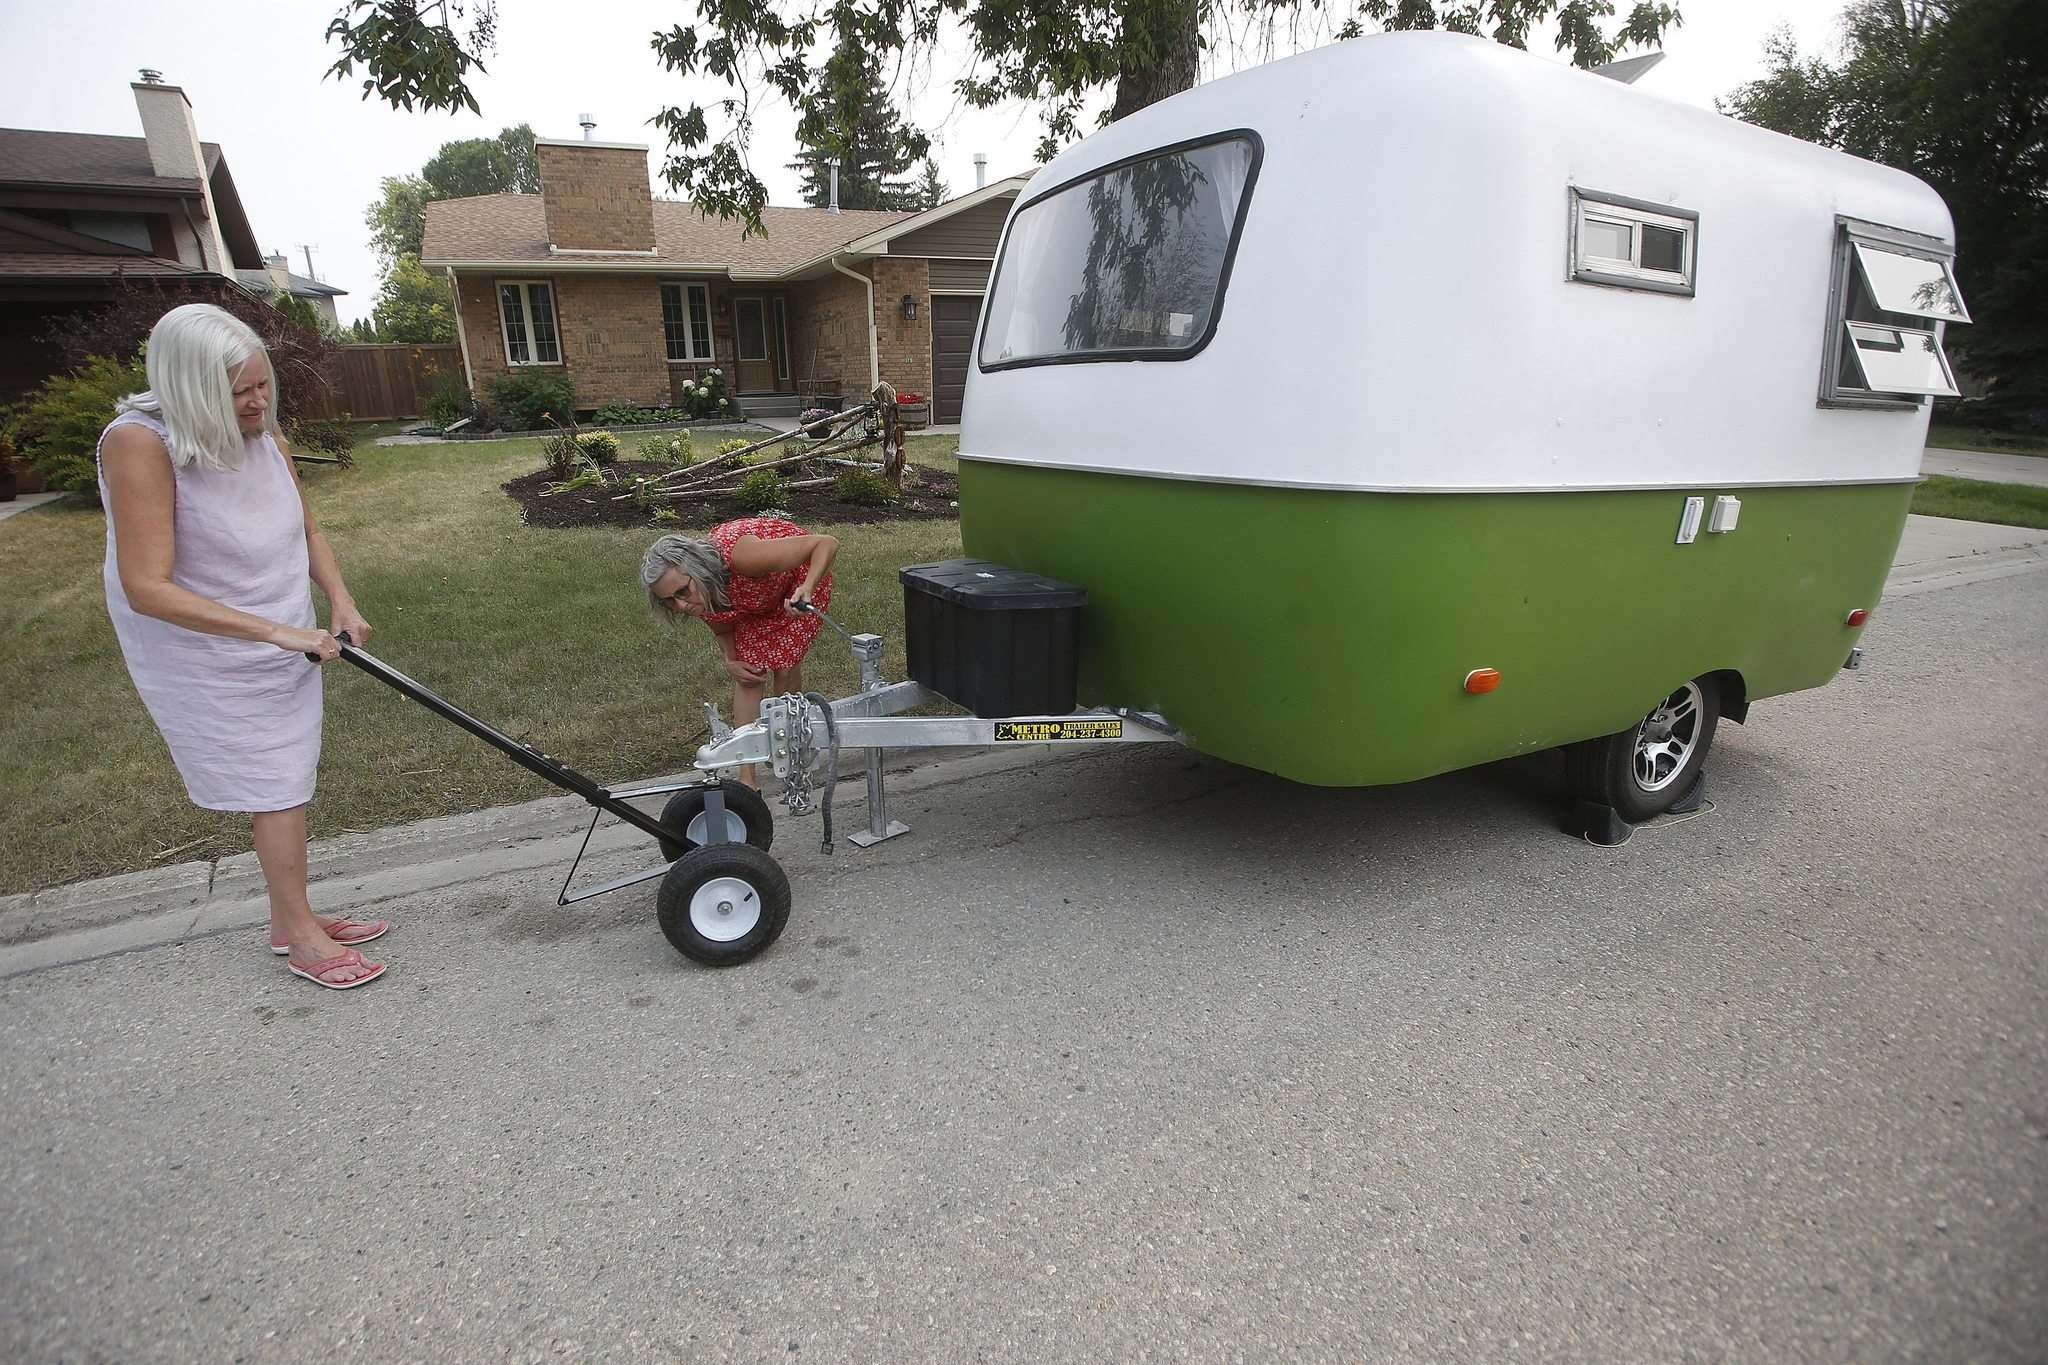 JOHN WOODS / WINNIPEG FREE PRESS</p></p><p>Light enough, and well-balanced enough, the Boler can be moved with a simple wheeled dolly, as McCoomas demonstrates. </p>